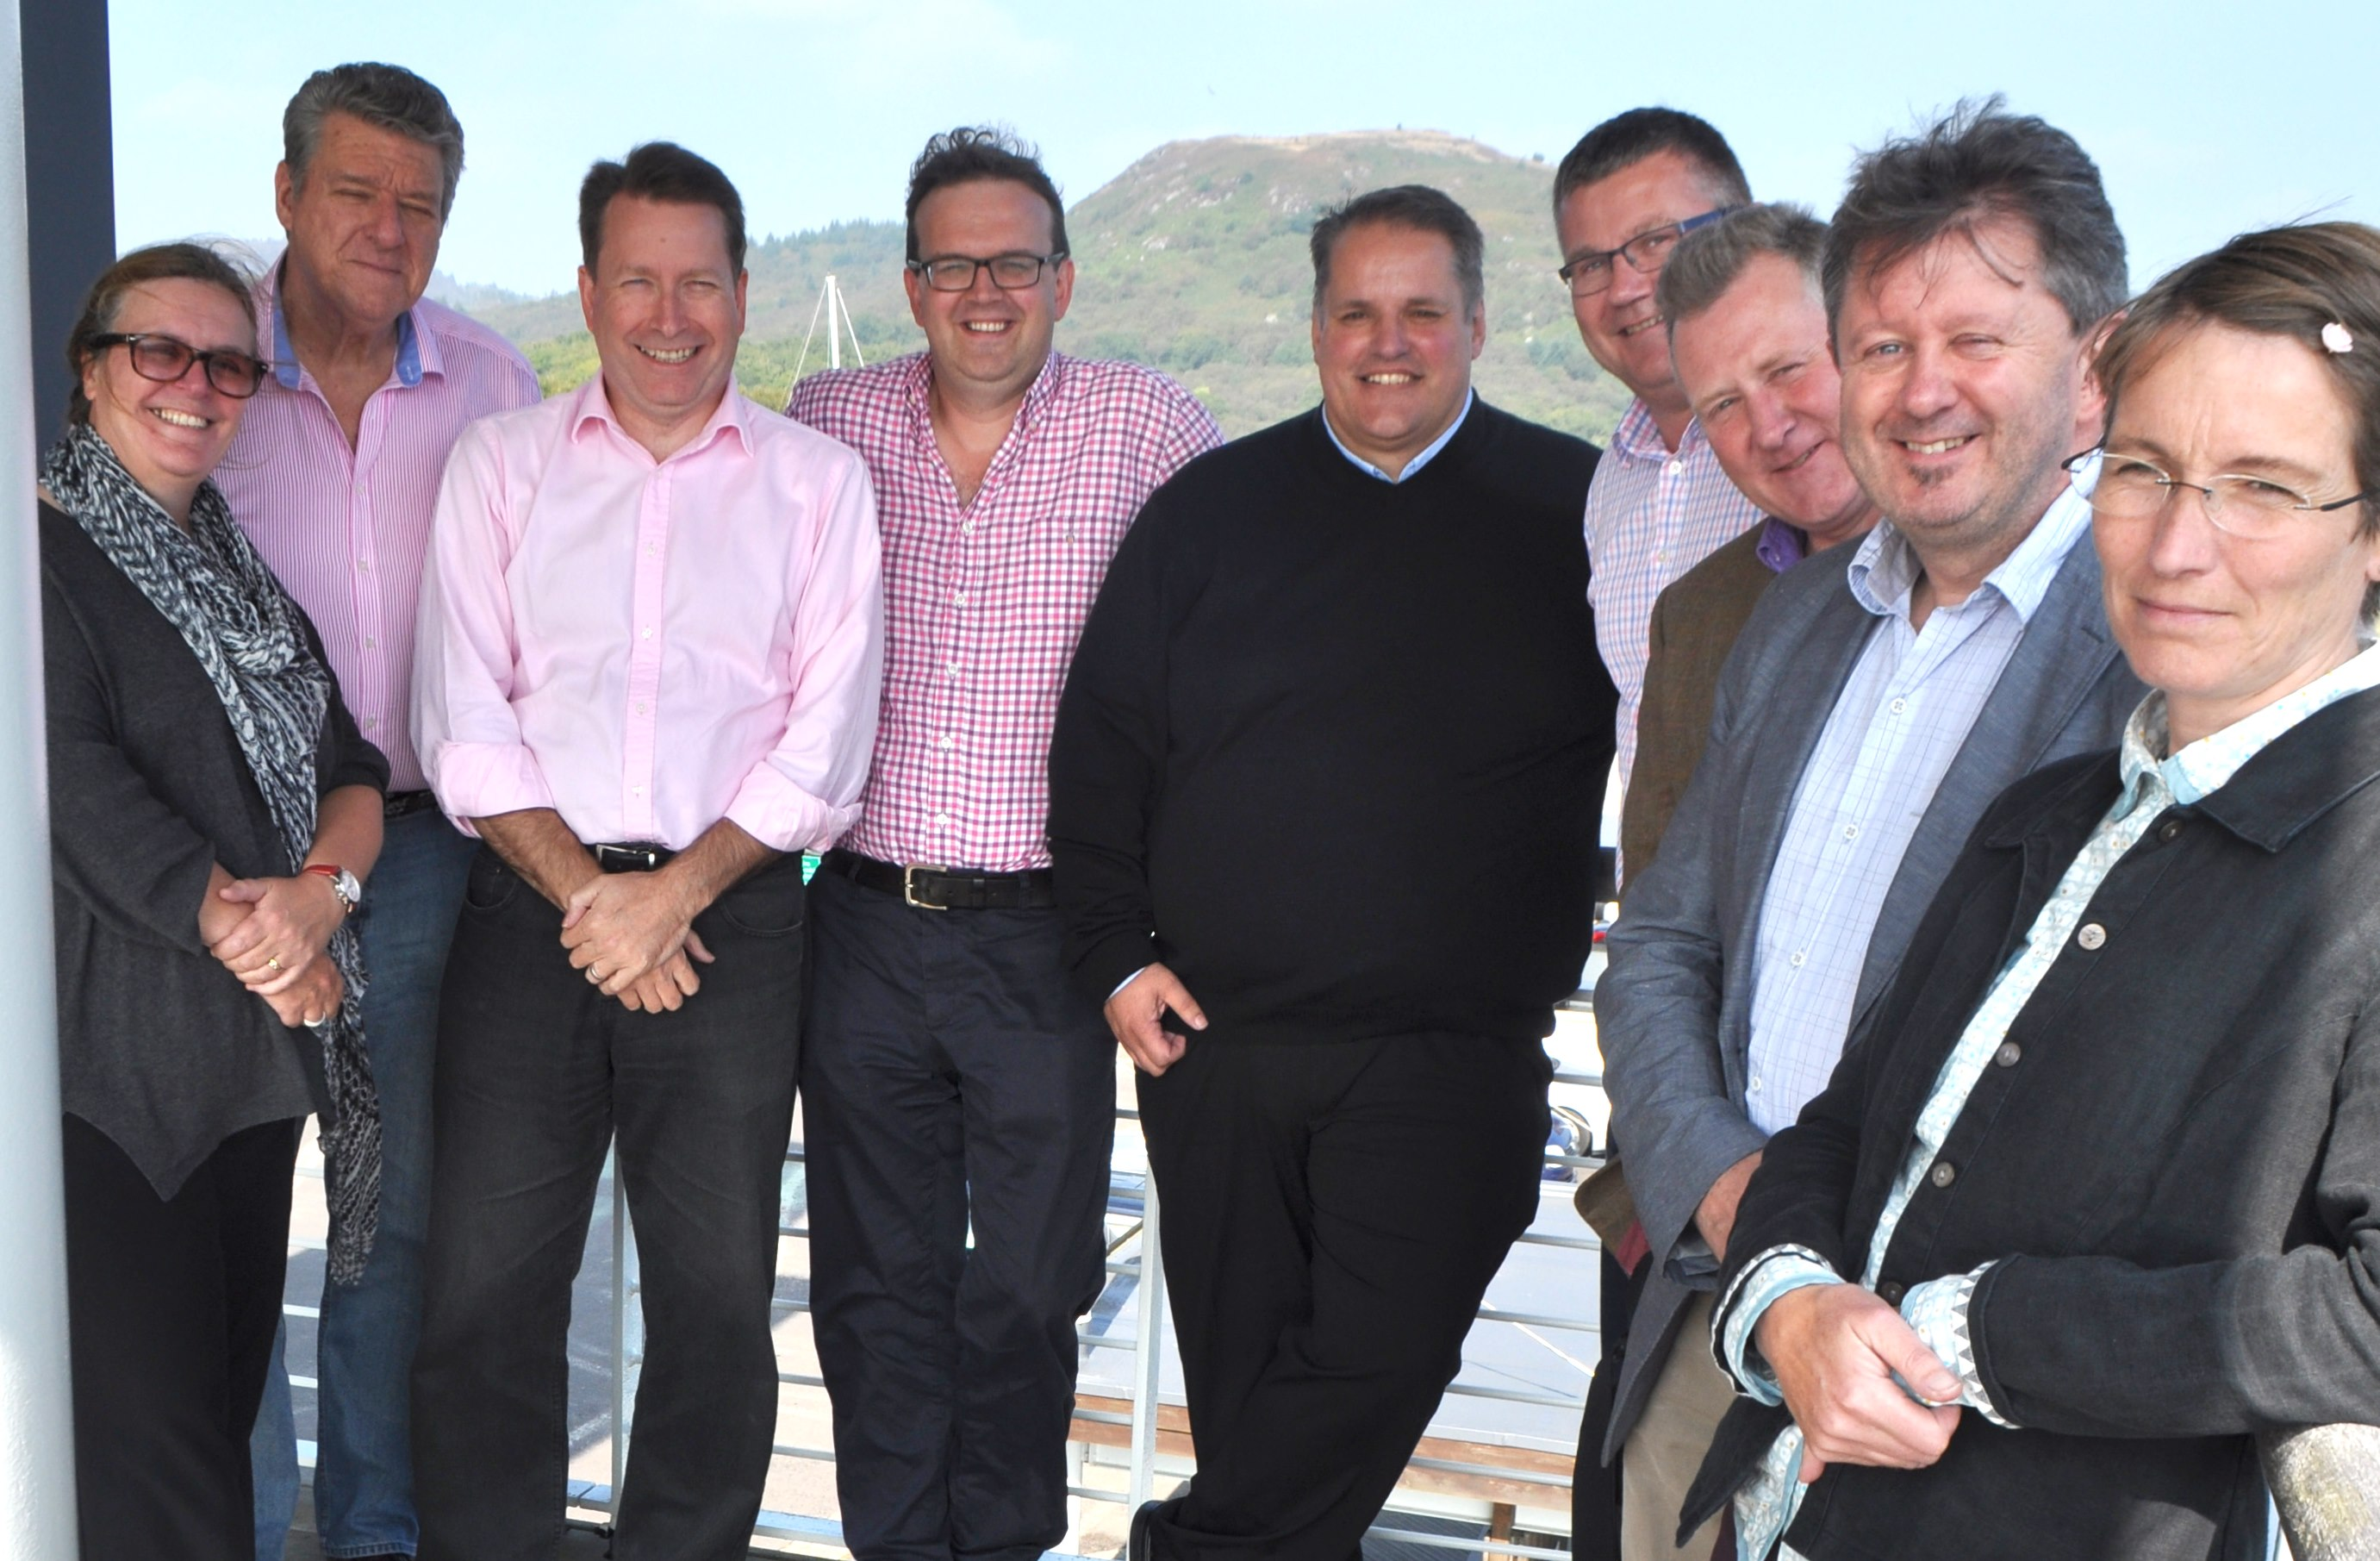 Argyll and the Isles Tourism Co-operative's board. From left, Carron Tobin, David Currie, Calum Ross, Niall Macalister Hall, chairman Gavin Dick, Iain Jurgensen, Andrew Wilson, Brian Keating and Fiona McPhail.